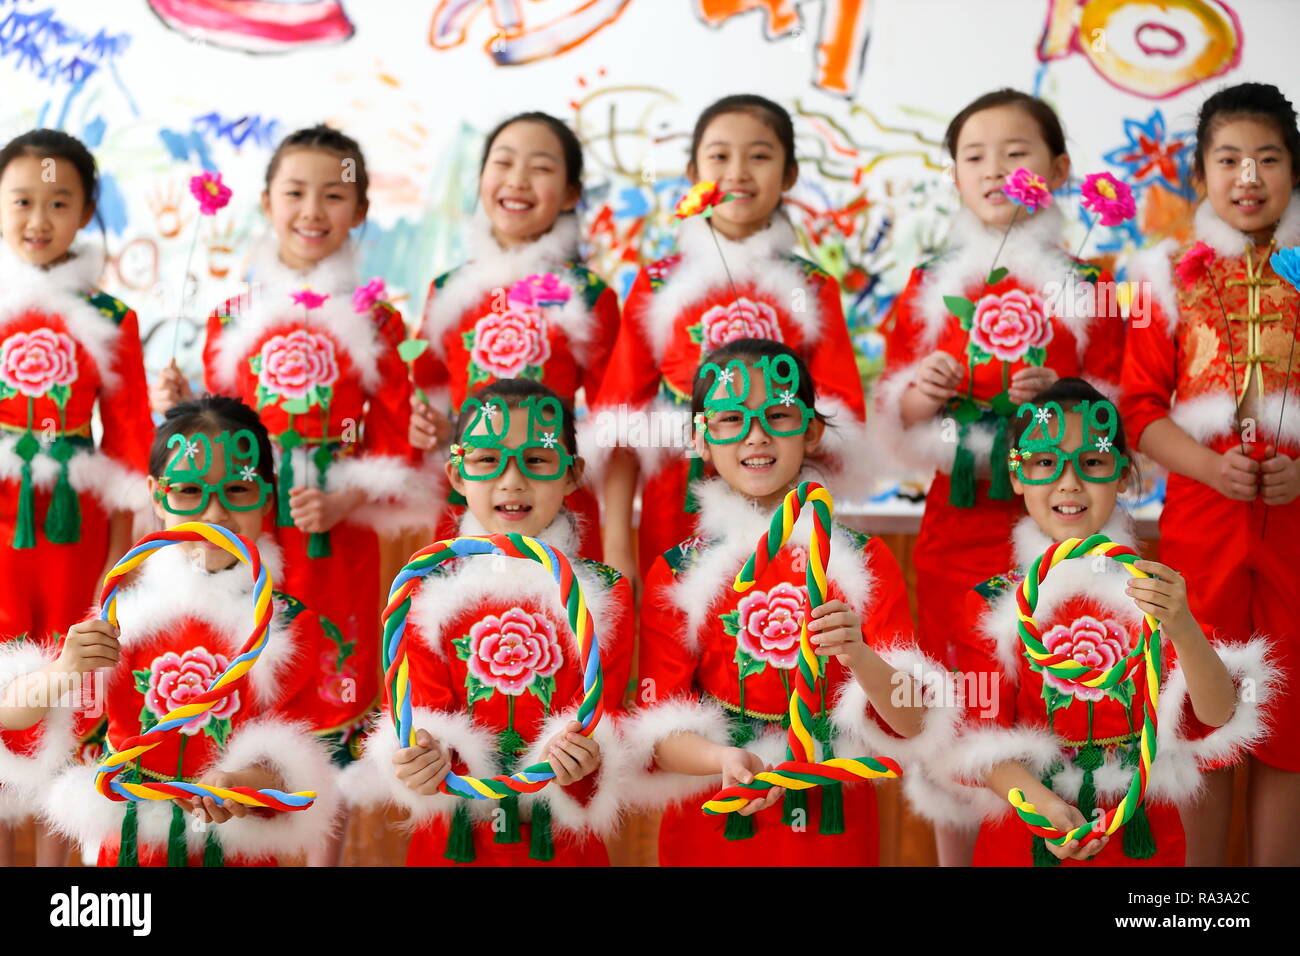 Qingdao, China's Shandong Province. 1st Jan, 2019. Pupils dressed in festive costumes pose for a group photo in Qingdao, east China's Shandong Province, Jan. 1, 2019. Various activities were organized across China to greet the year of 2019. Credit: Liang Xiaopeng/Xinhua/Alamy Live News - Stock Image